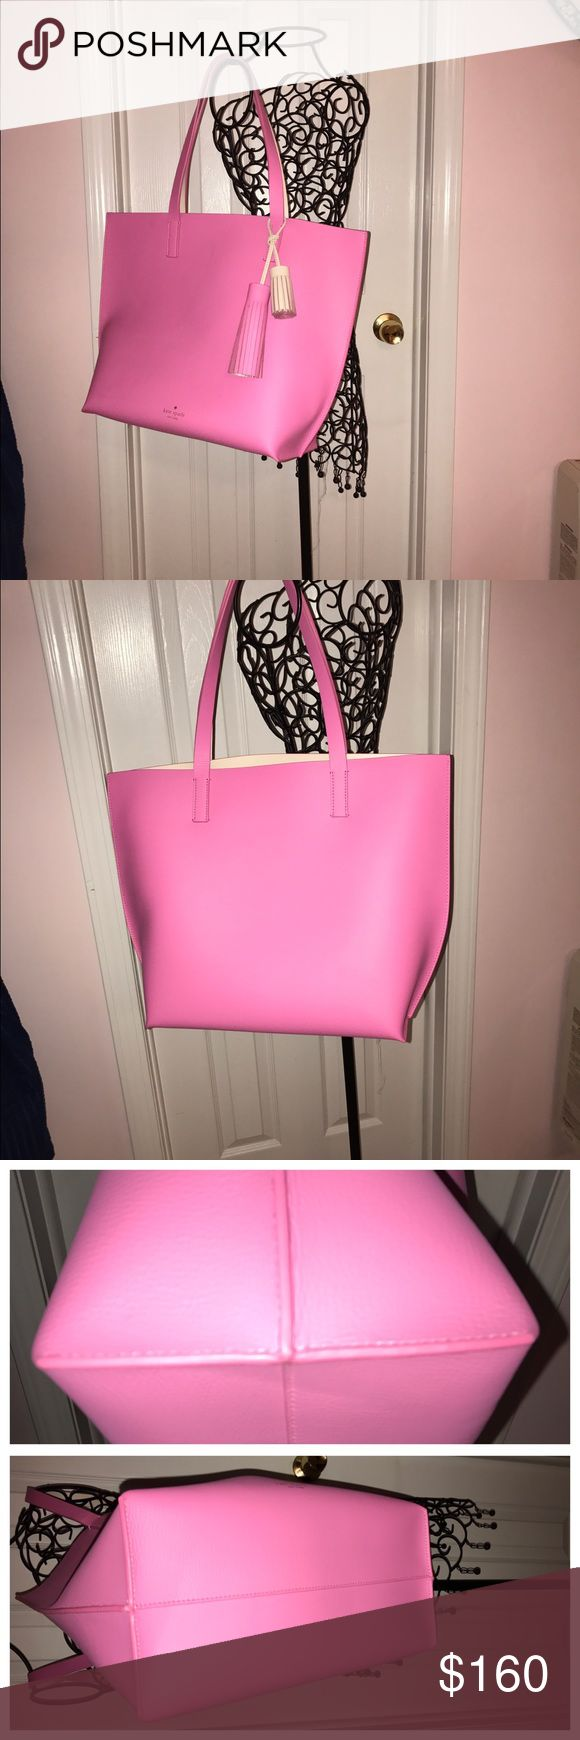 """👛Kate Spade ♠️ COURT FORTER TASHA TOTE💕 RELISTED NWT but not attached...NEVER USED❣❣Pebbled leather with embossed signature and light gold stud  Interior has one zip pocket and one slide pocket  Two fringe tassels included (tassel 5"""" tassel 2.25"""")  Approx dimensions: 13"""" H x 17.5"""" W x 6"""" D with dual handle (9"""" drop) kate spade Bags Totes"""